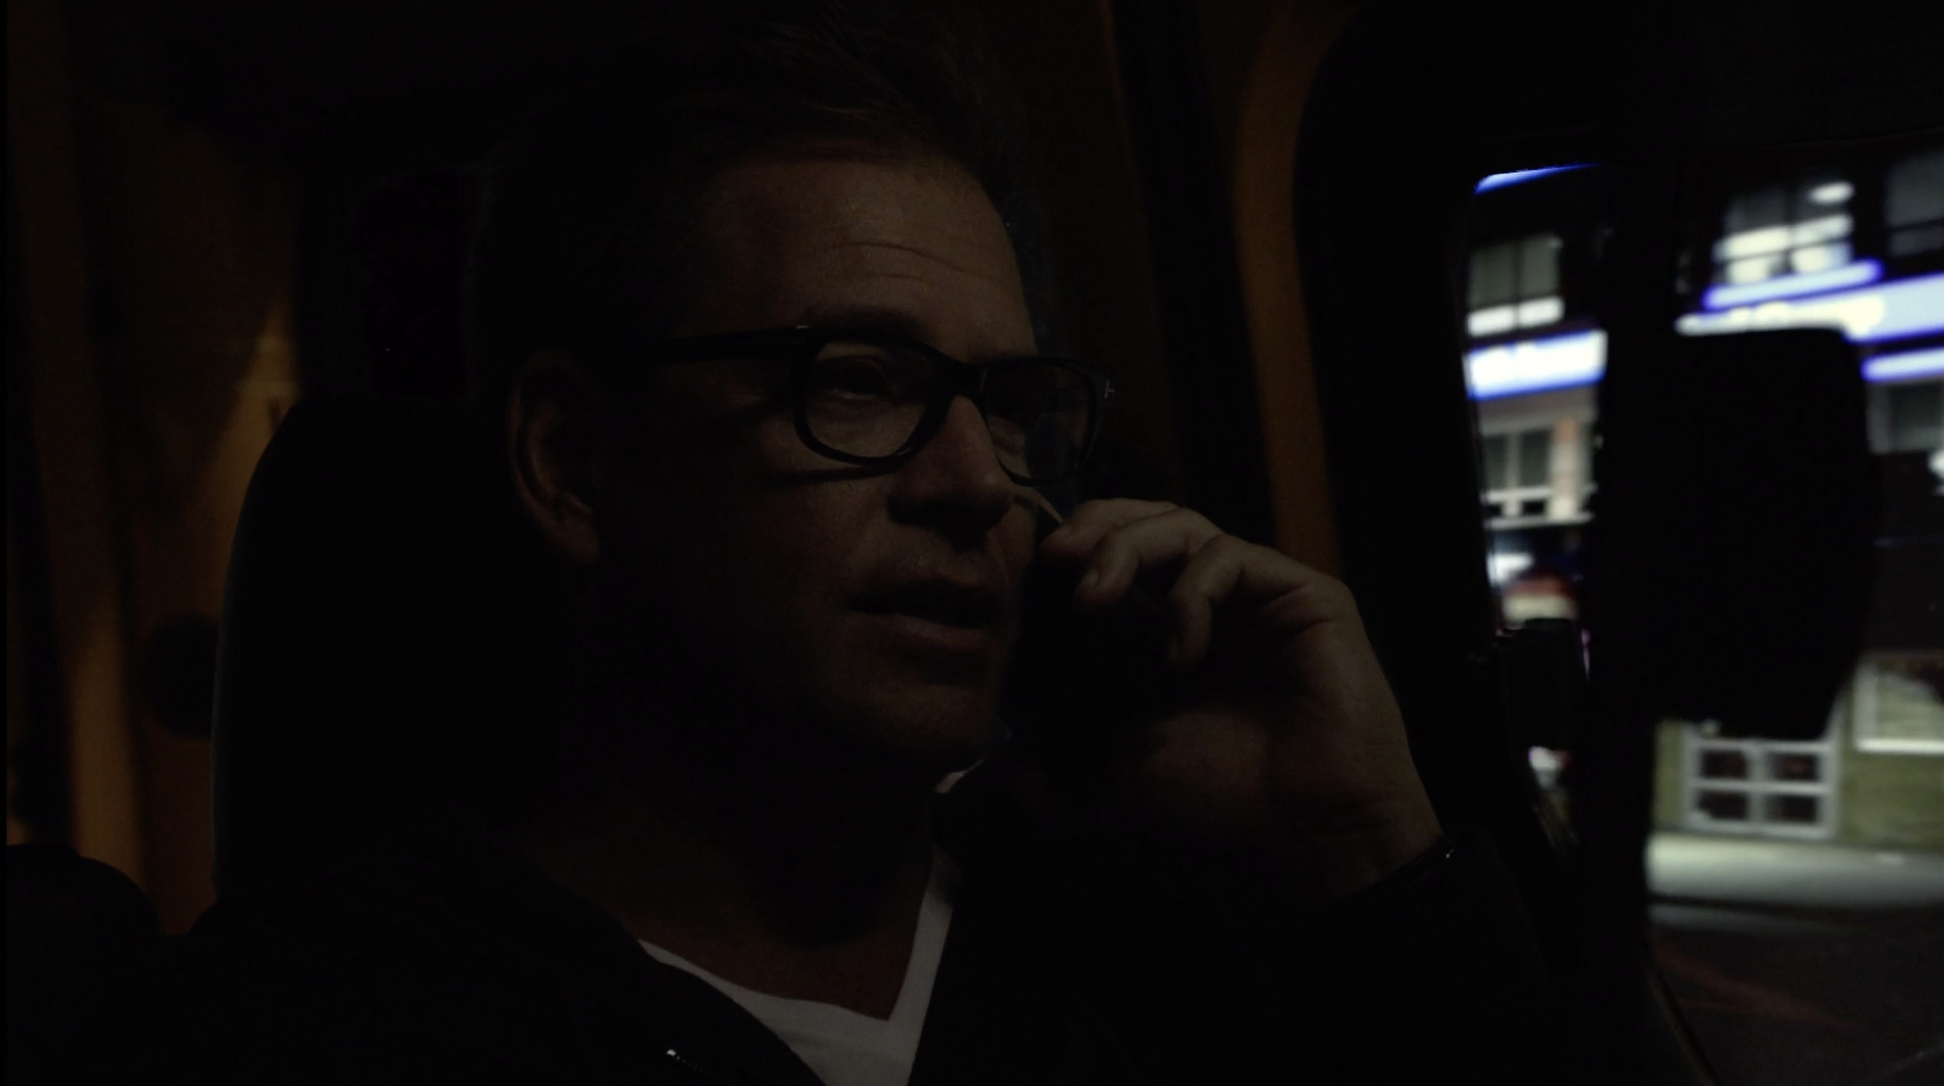 Bull Driving Footage New York City S03E01 6.png